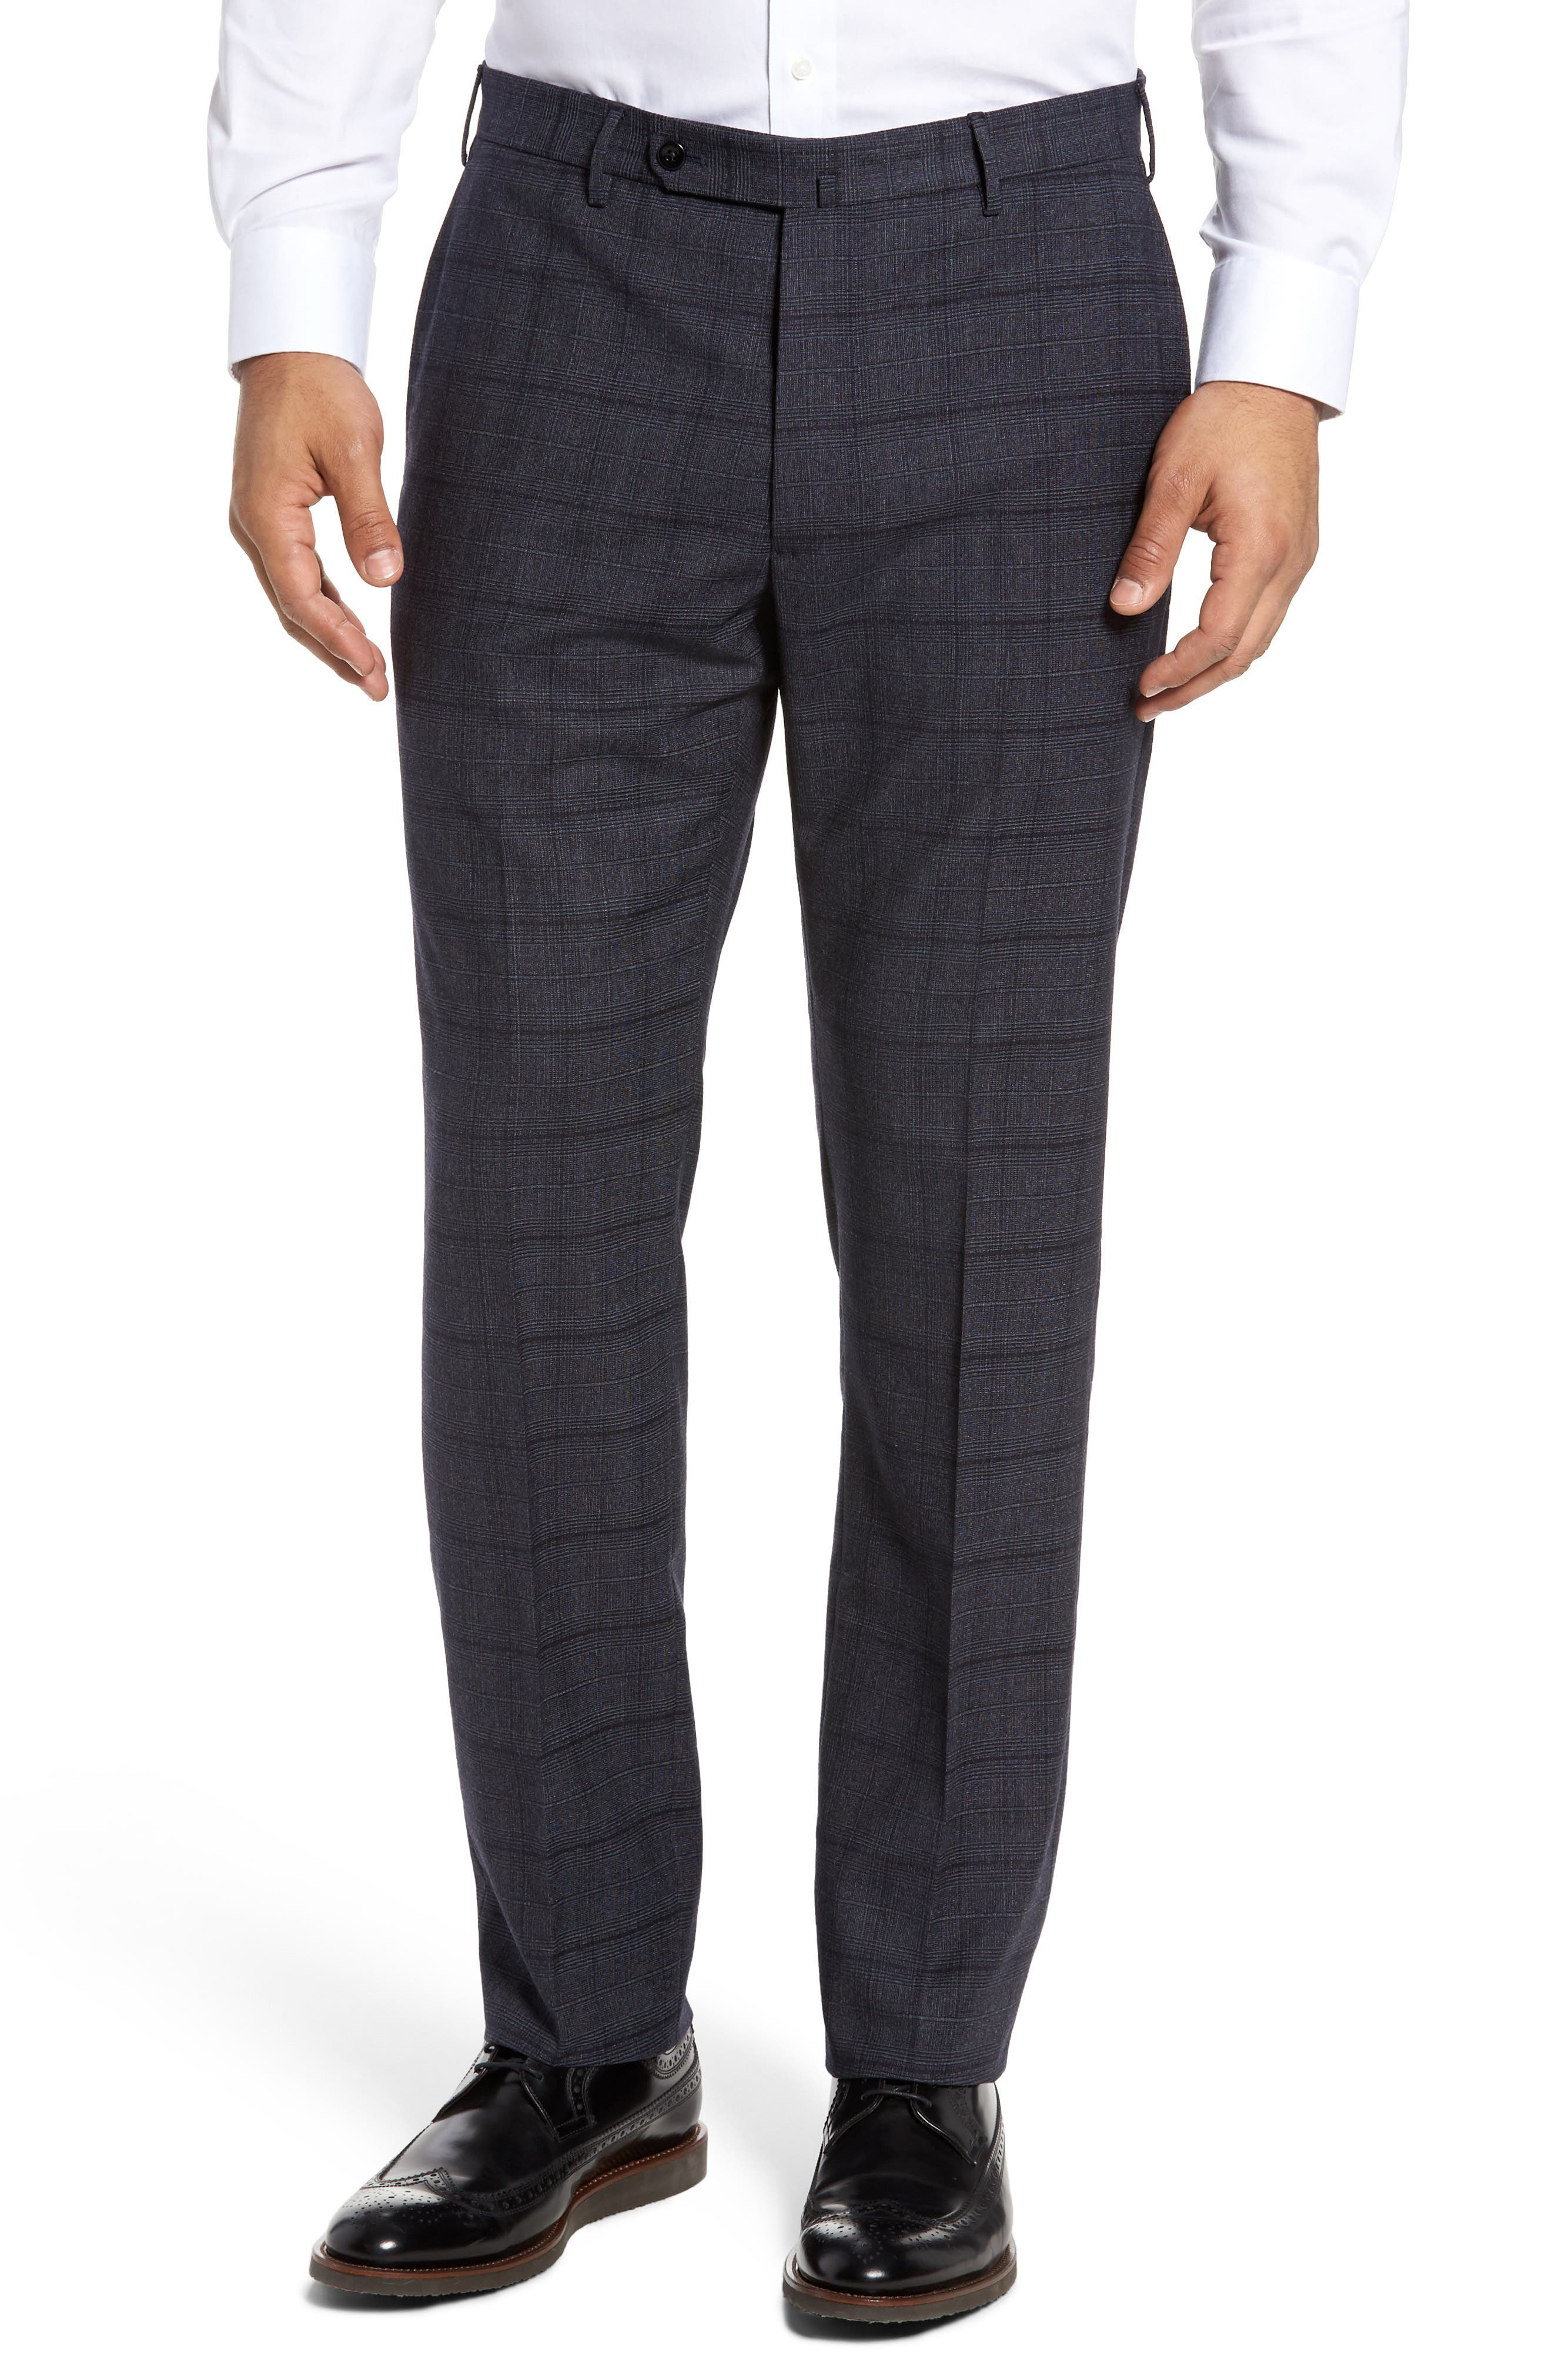 Main Image - Incotex Benson Flat Front Trousers